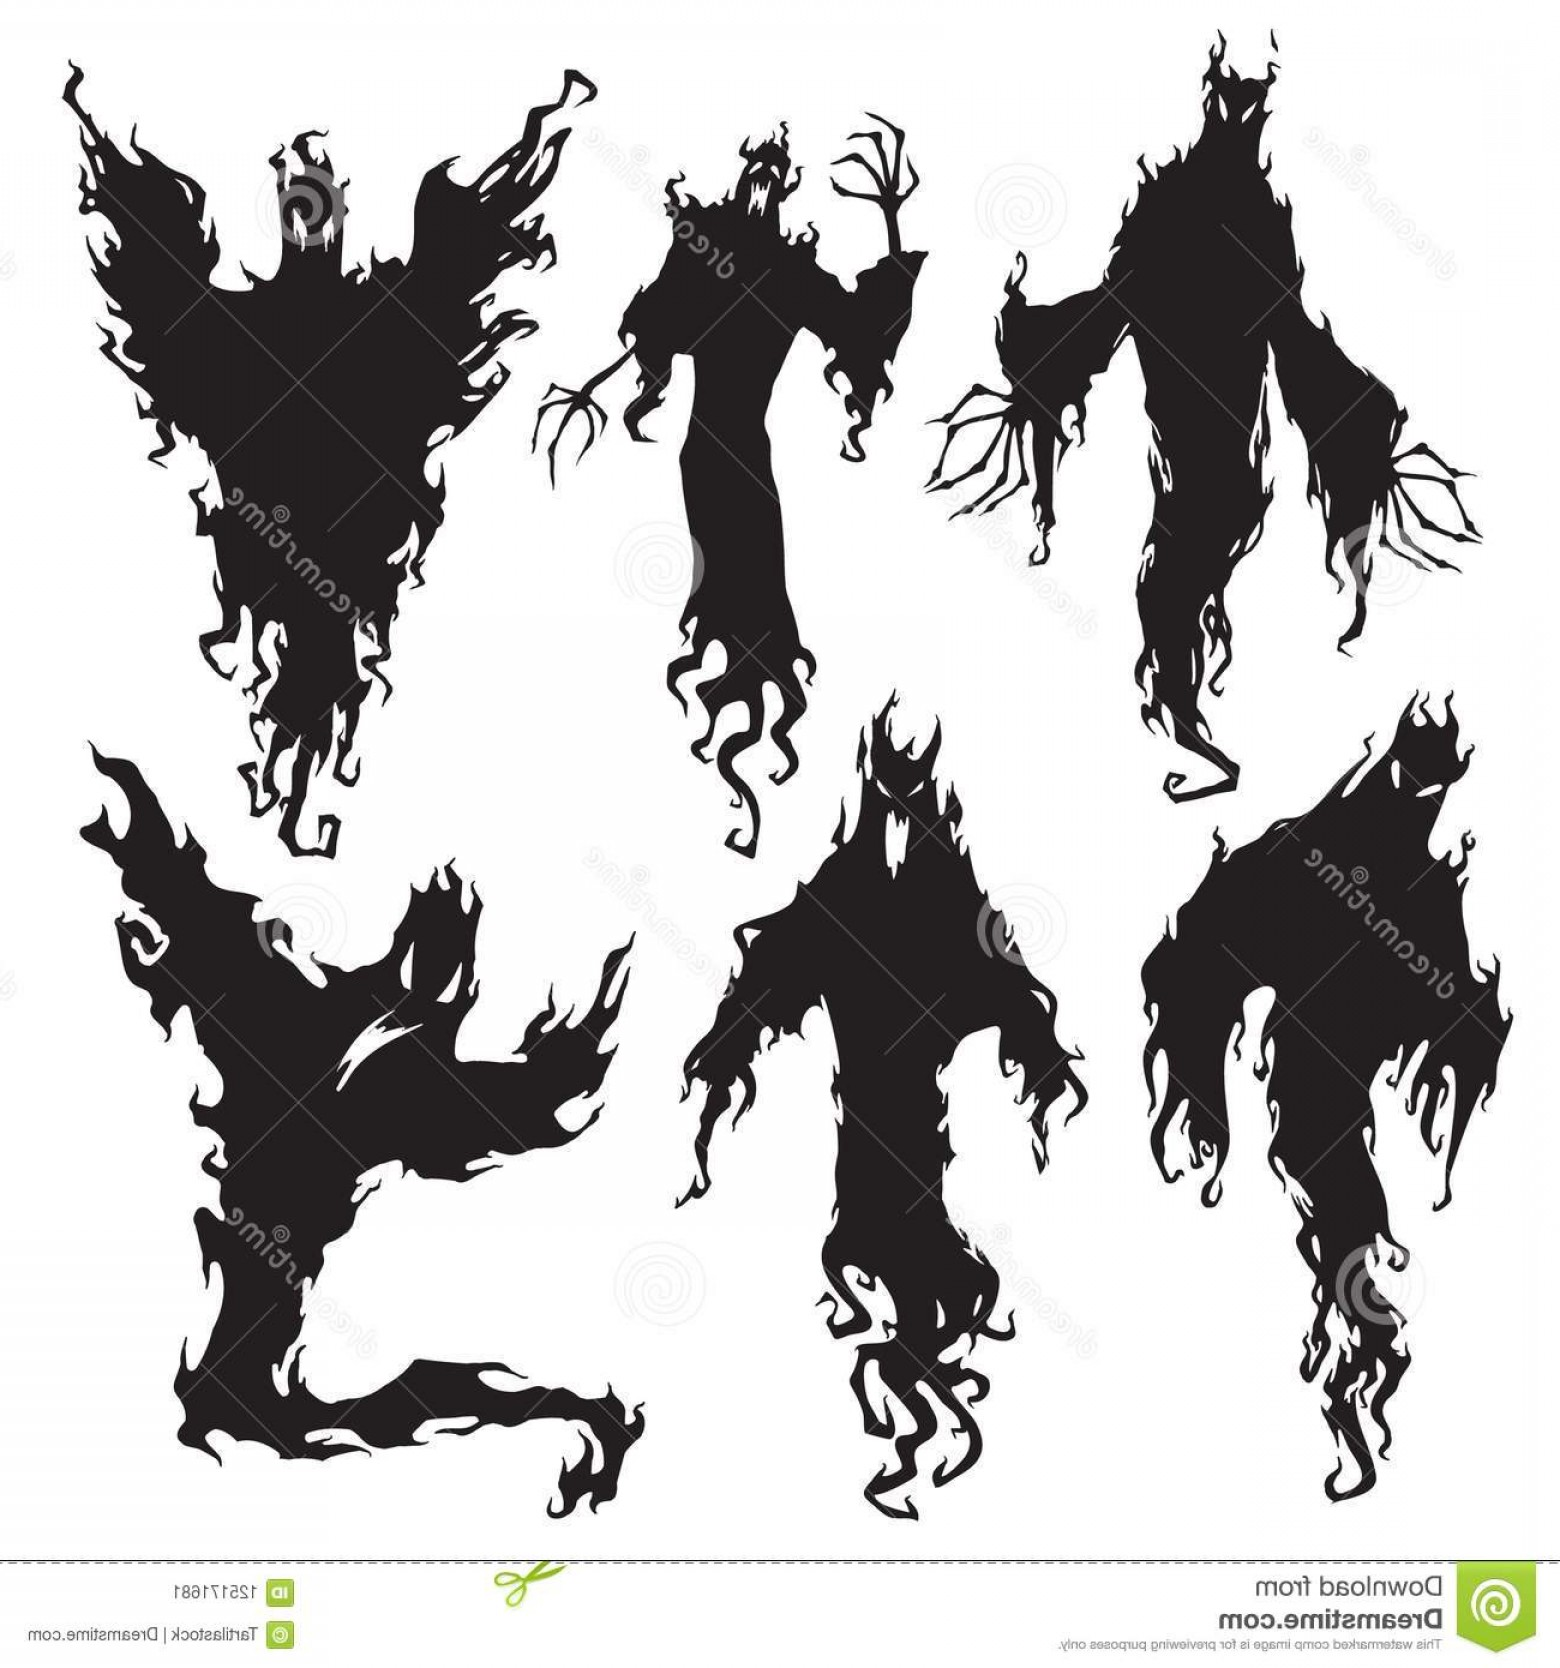 Wizard Silhouette Vector: Evil Spirit Silhouette Halloween Dark Night Devil Nightmare Demon Ghost Appear Magic Wizard Ugly Silhouettes Flying Image